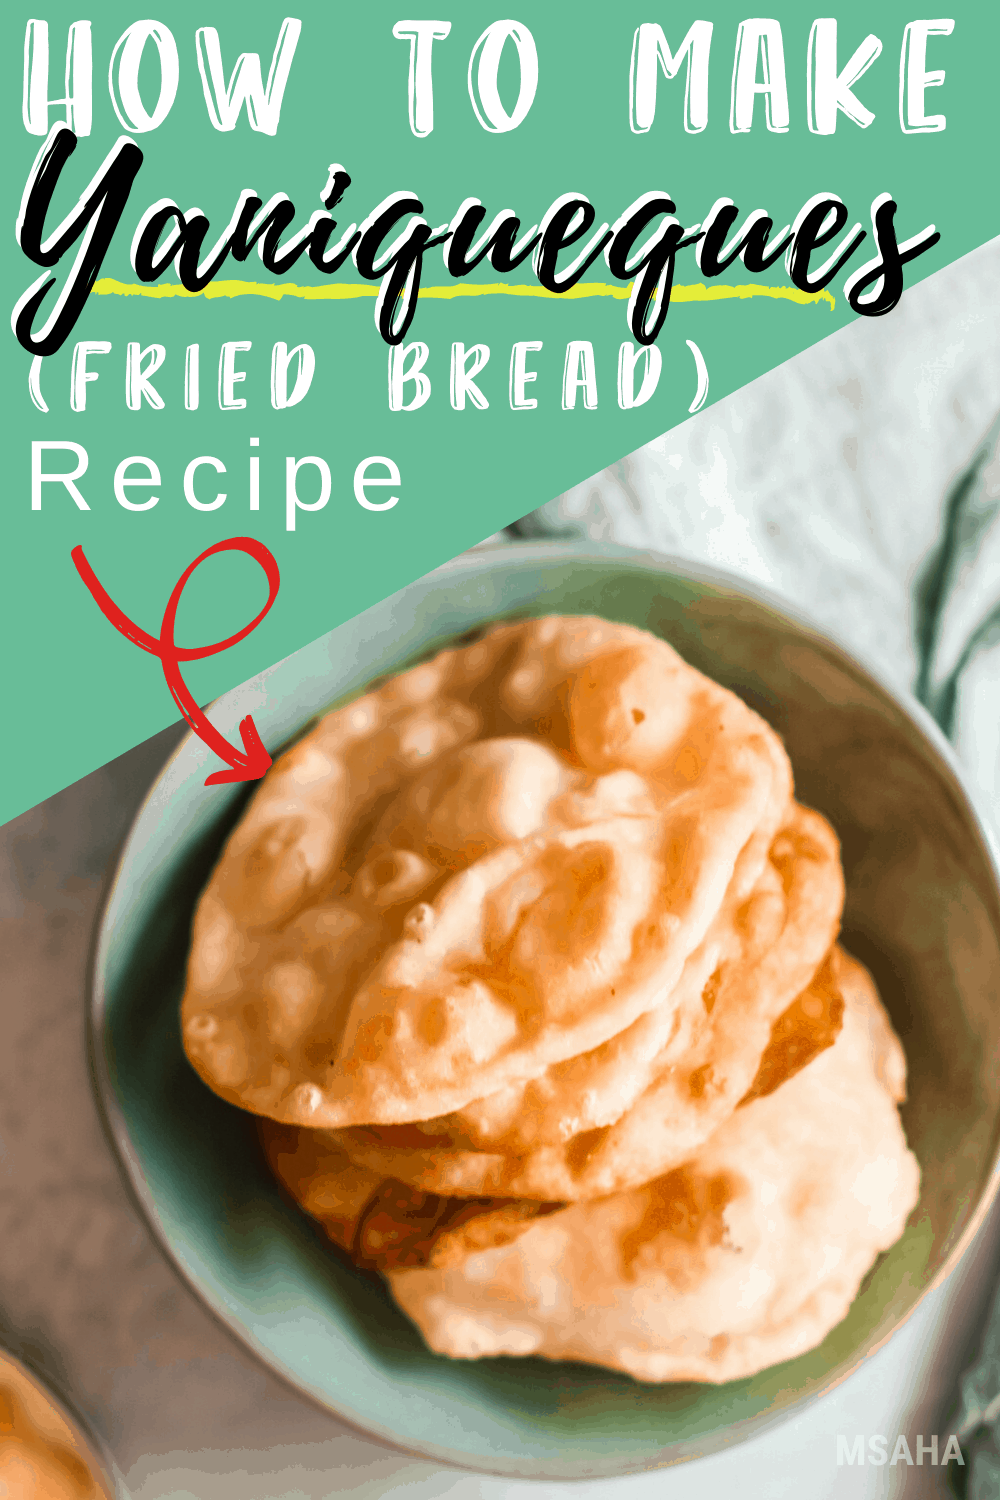 Yaniqueques are a type of fried bread enjoyed by many Latinos and served with bacalao and beans. These are so easy to make, flaky and delicious! #friedbread #yaniqueques #friedfood via @mystayathome